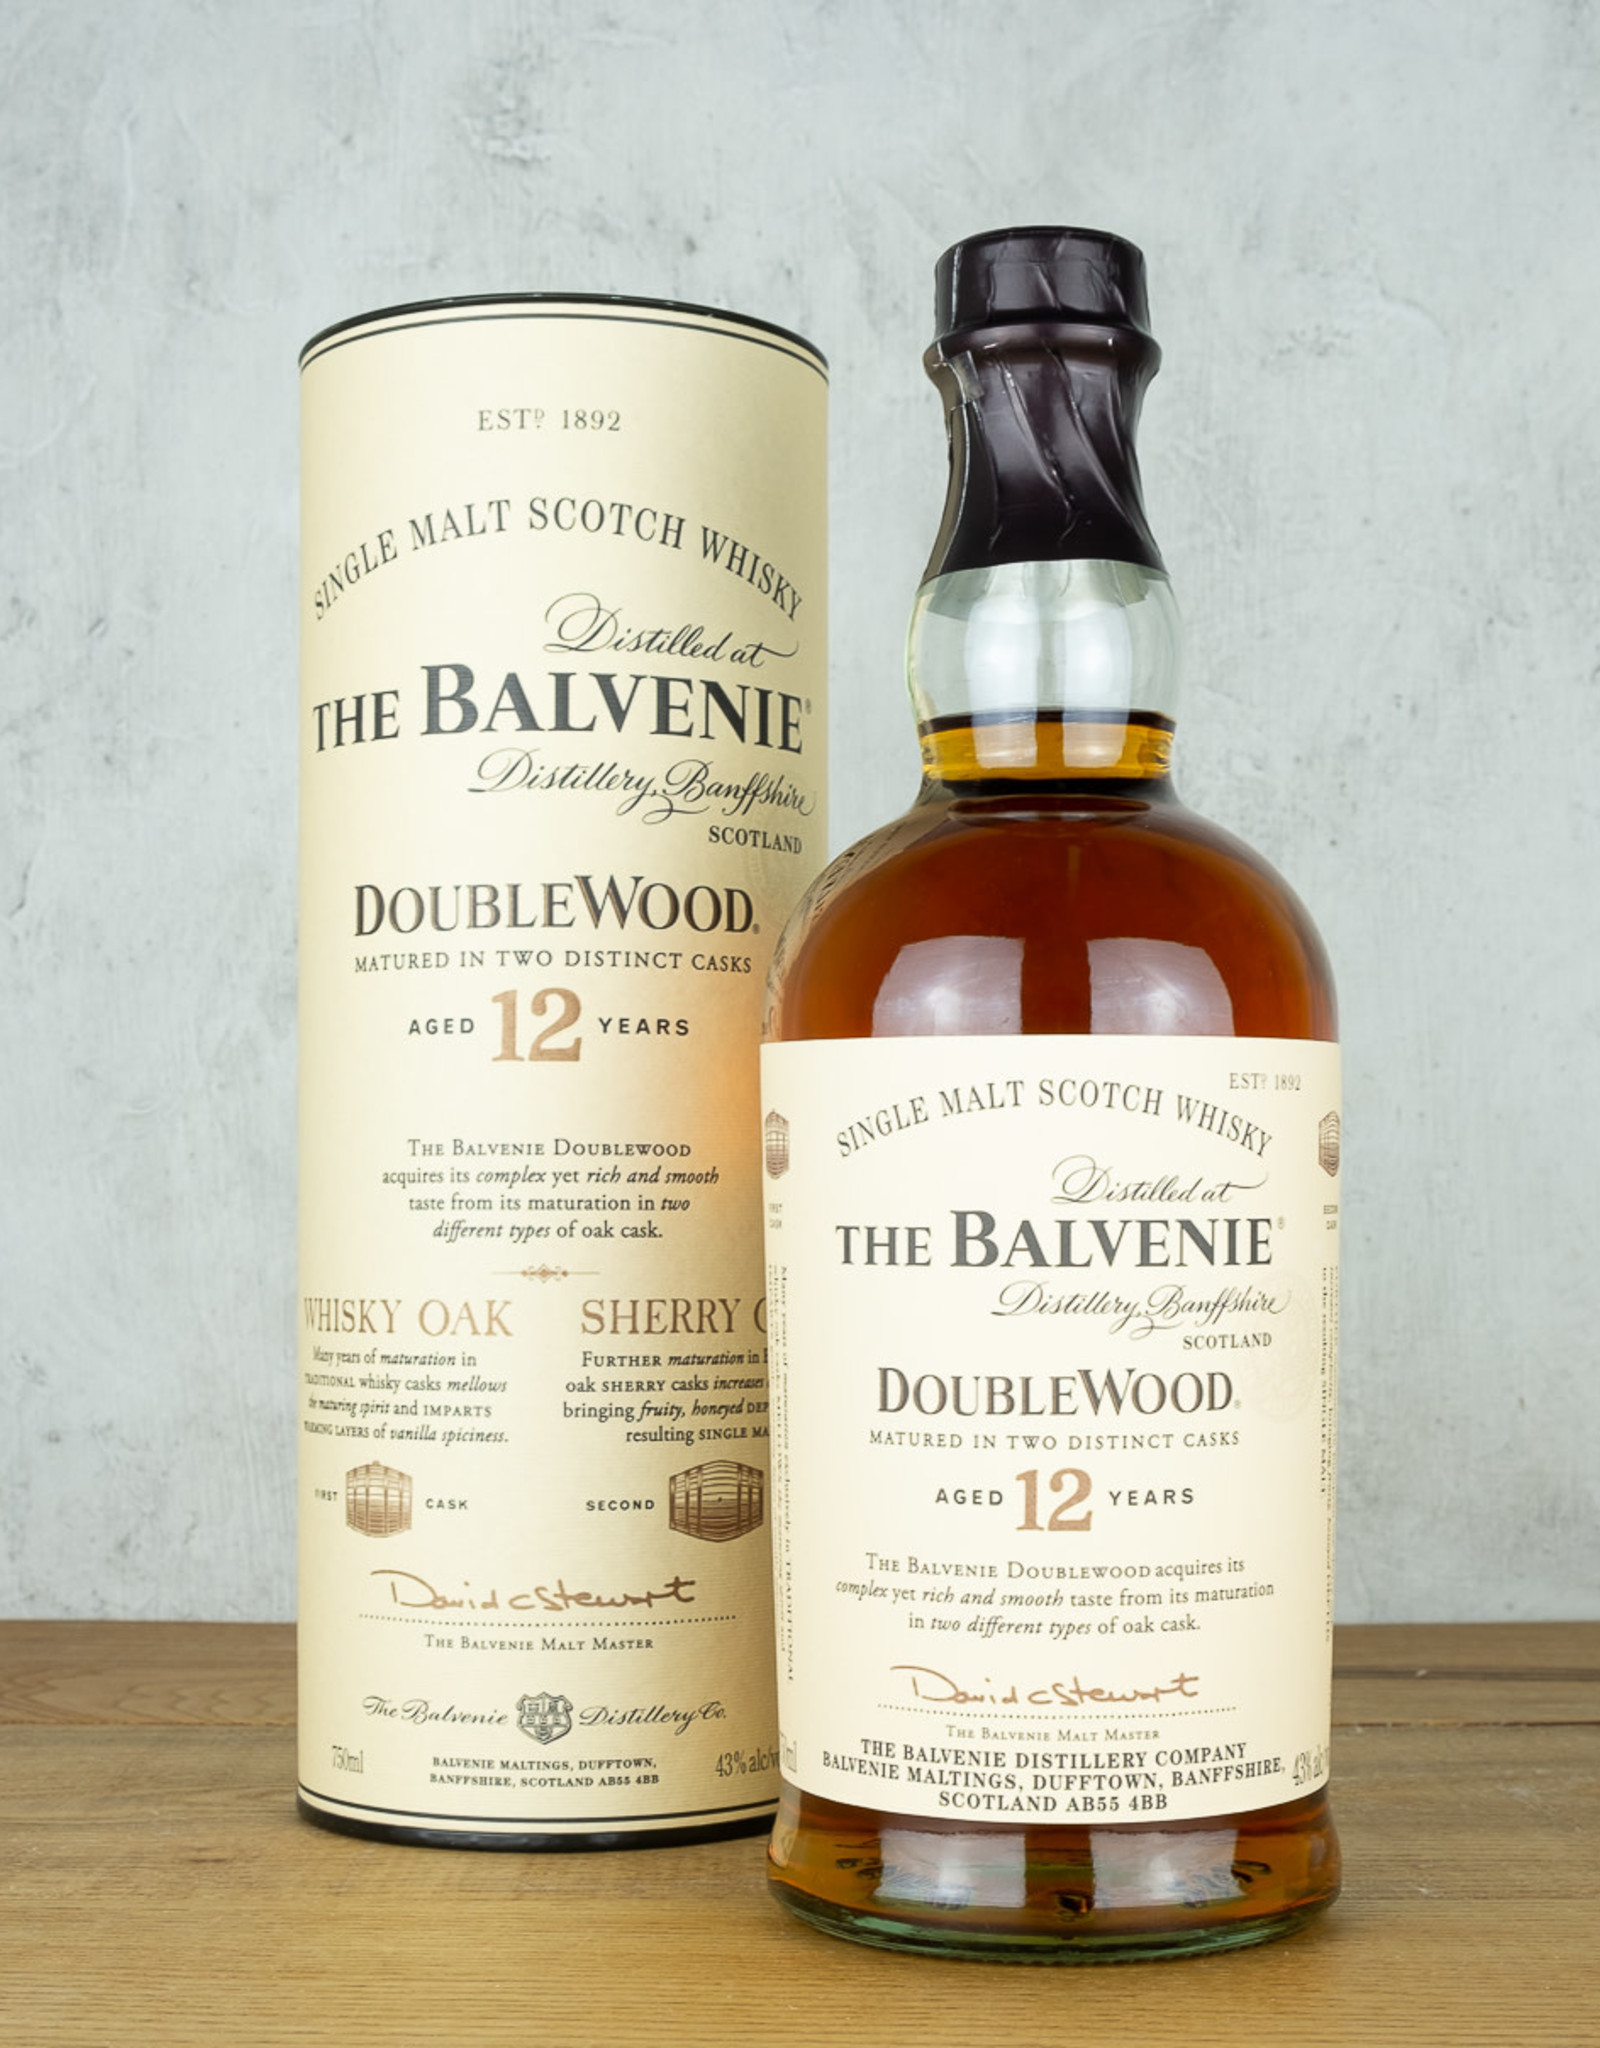 Balvenie 12 Year Doublewood  Single Malt Scotch Whisky